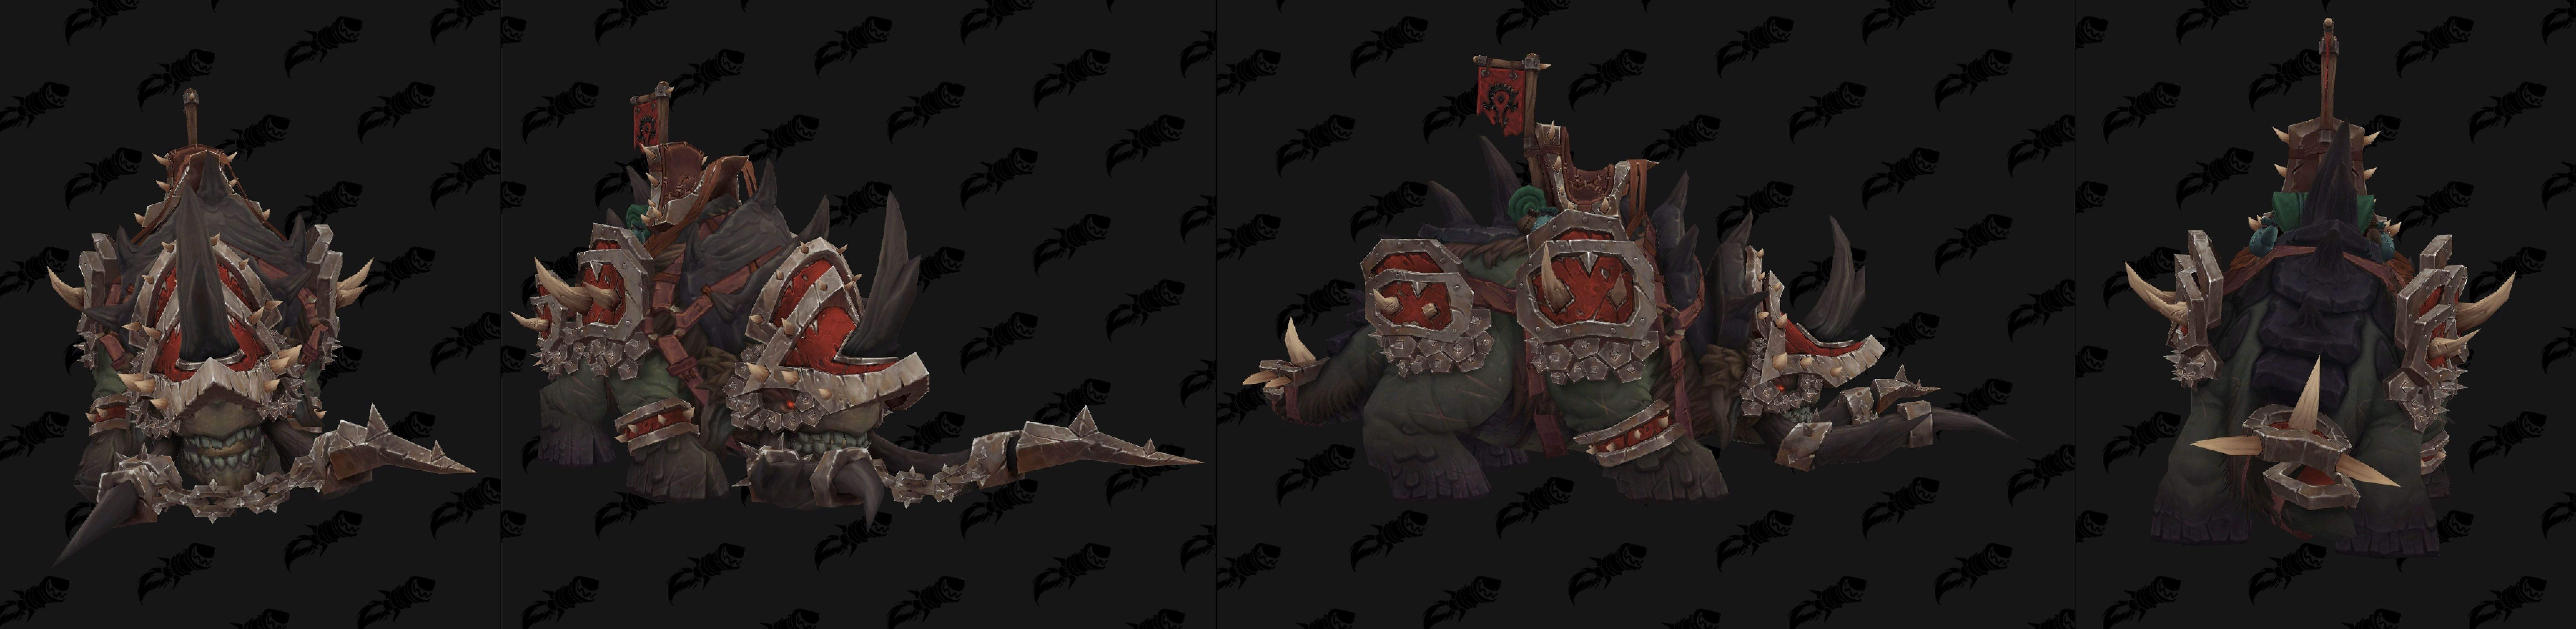 WoW BfA Mount Clefthoof Maghar PvP